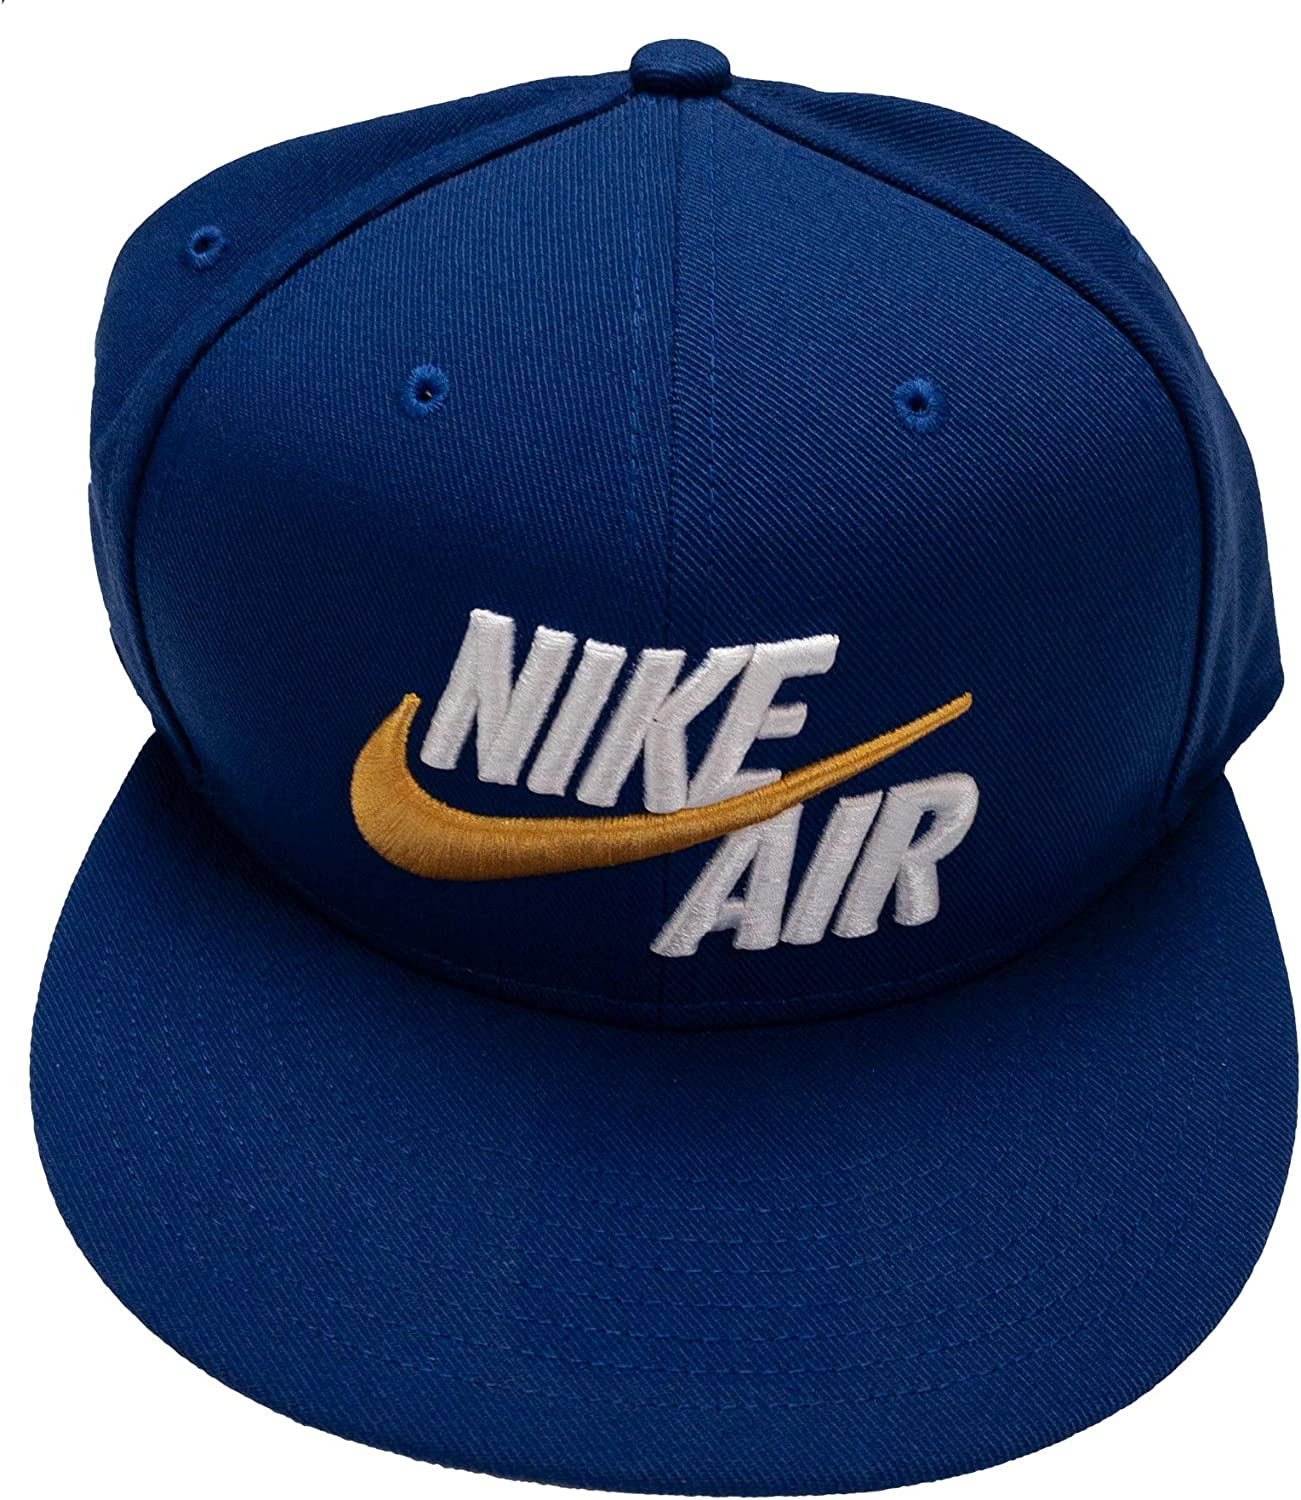 Nike Air True Mens Snapback Baseball Cap Hat (Blue): Amazon.es ...